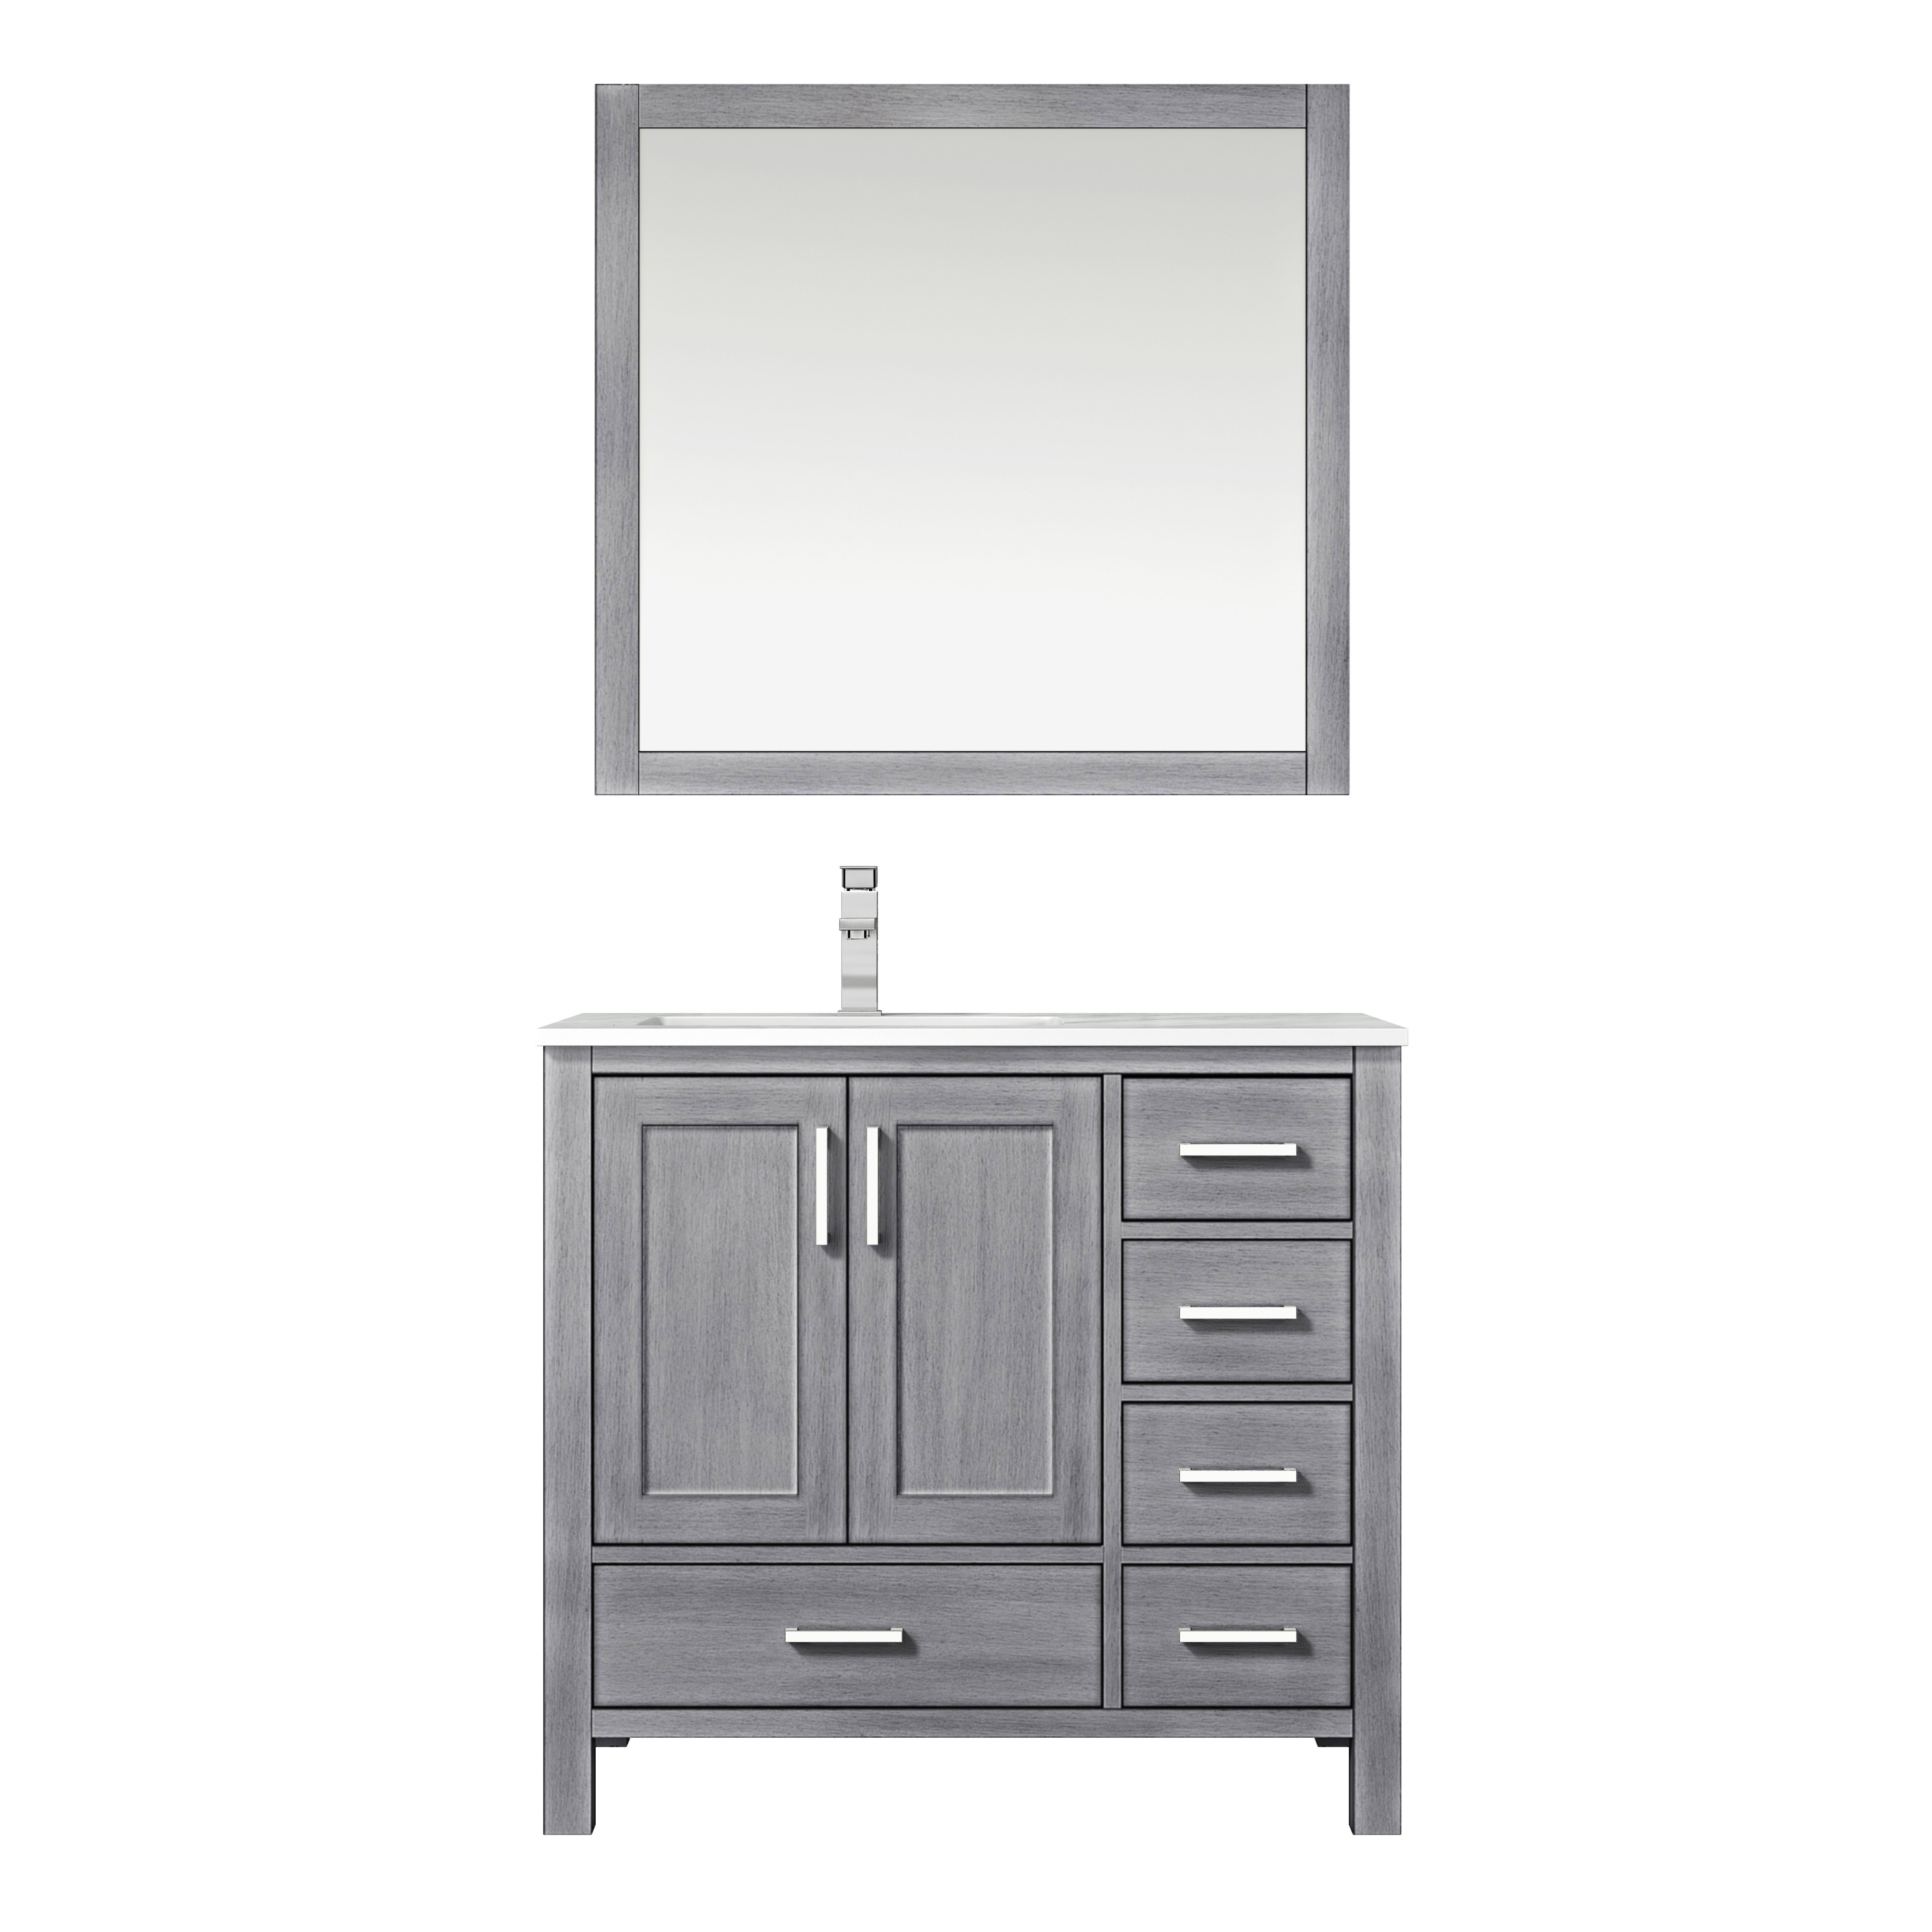 """36"""" Distressed Grey Vanity Cabinet Only - Left Version with Countertop and Mirror Options"""